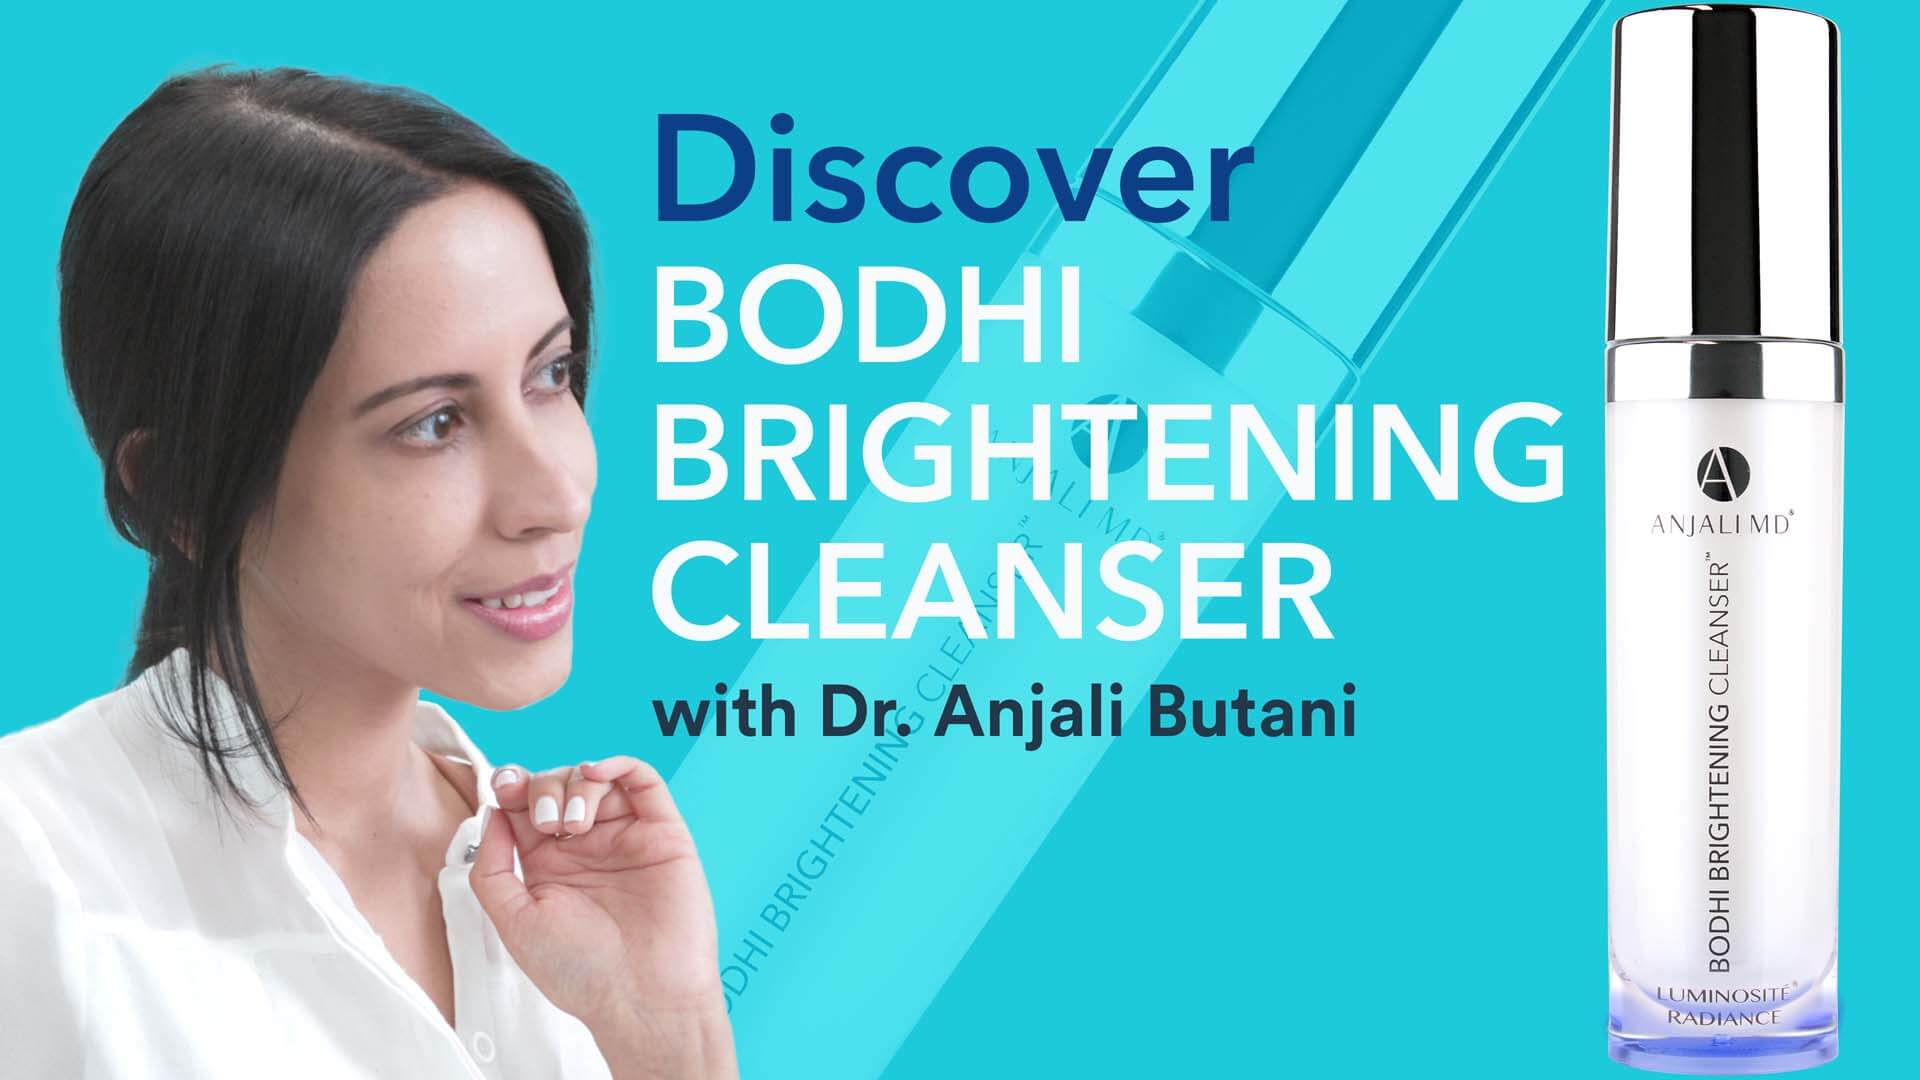 BODHI BRIGHTENING CLEANSER Discover Video